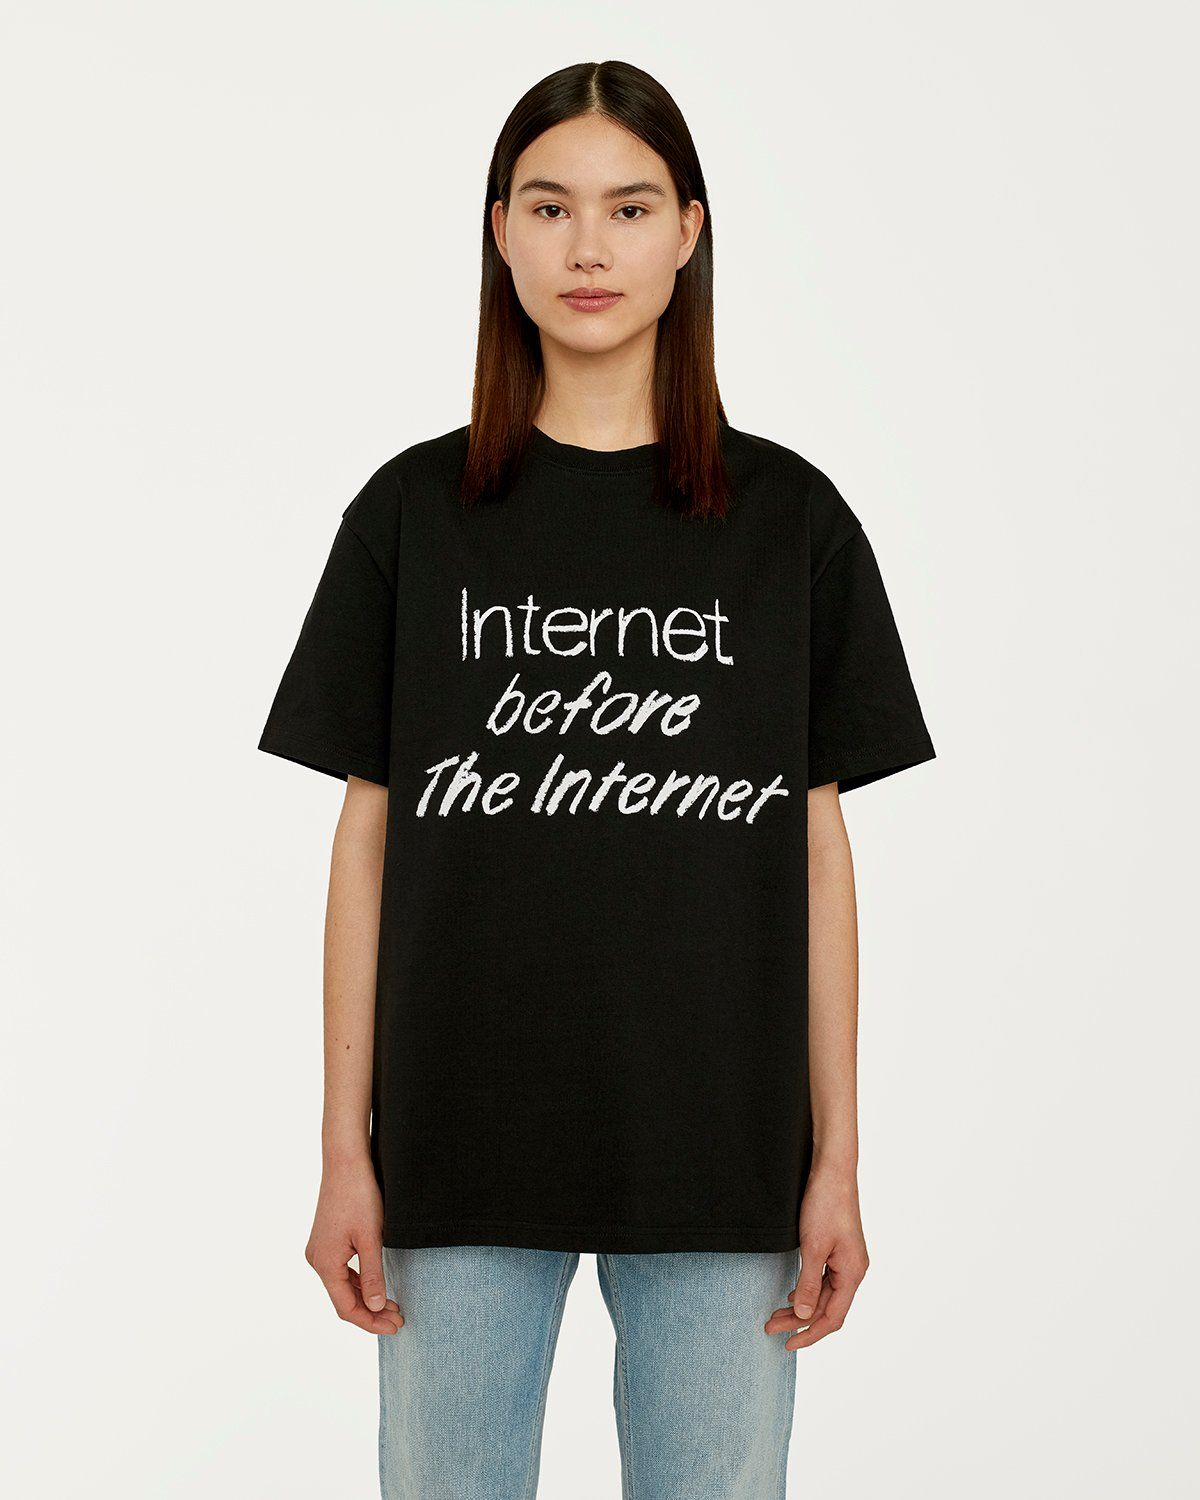 colette Mon Amour - The Internet Before The Internet T-Shirt Black - Image 4